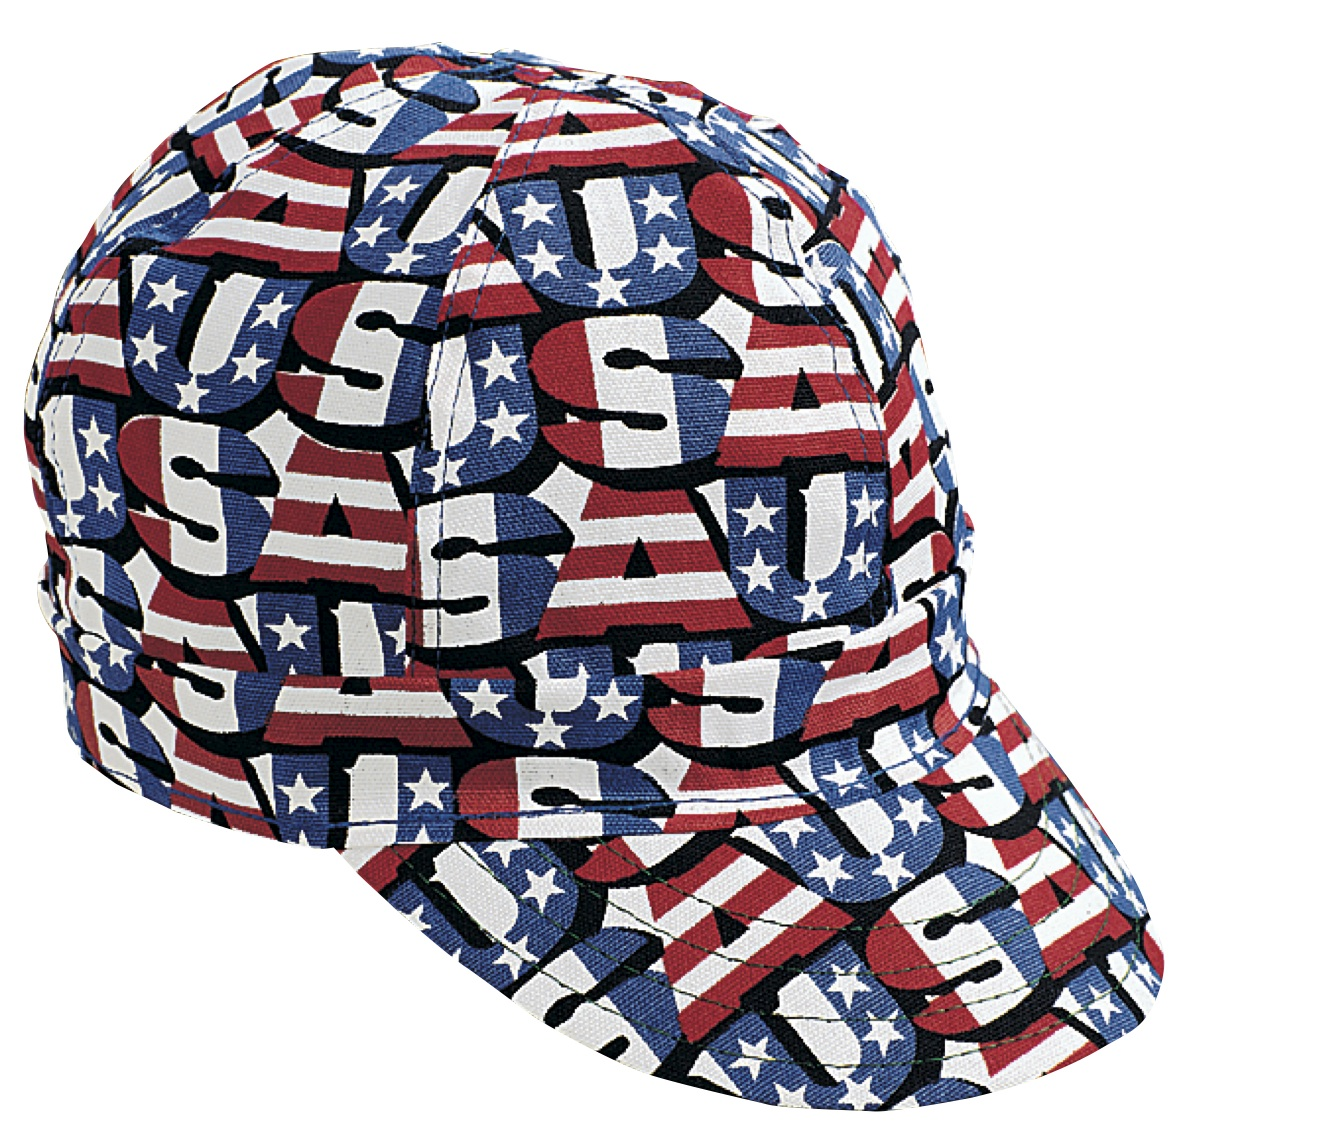 00210-00000-0750, Kromer Red White Blue USA Style Welder Cap, Cotton, Length 5, Width 6, Mutual Industries